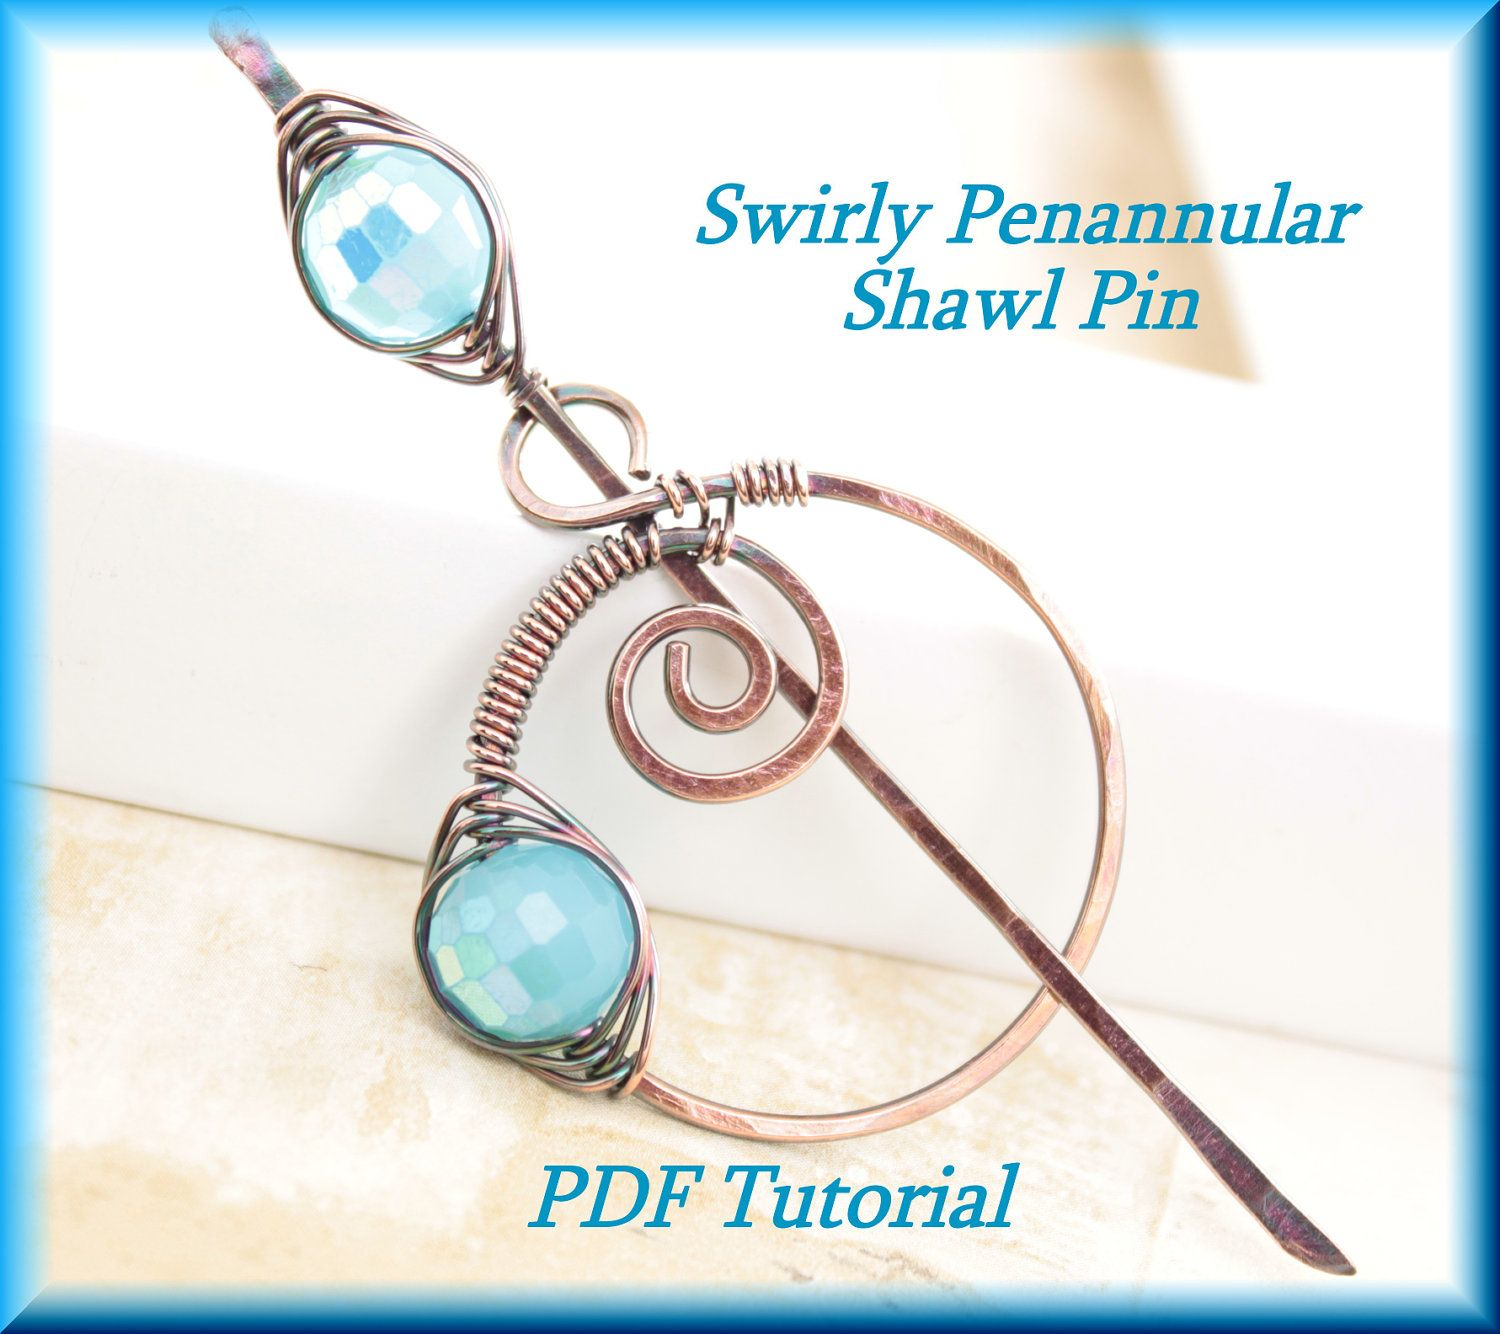 Swirly Penannular Metal Shawl Pin with a Stick PDF by IngoDesign ...